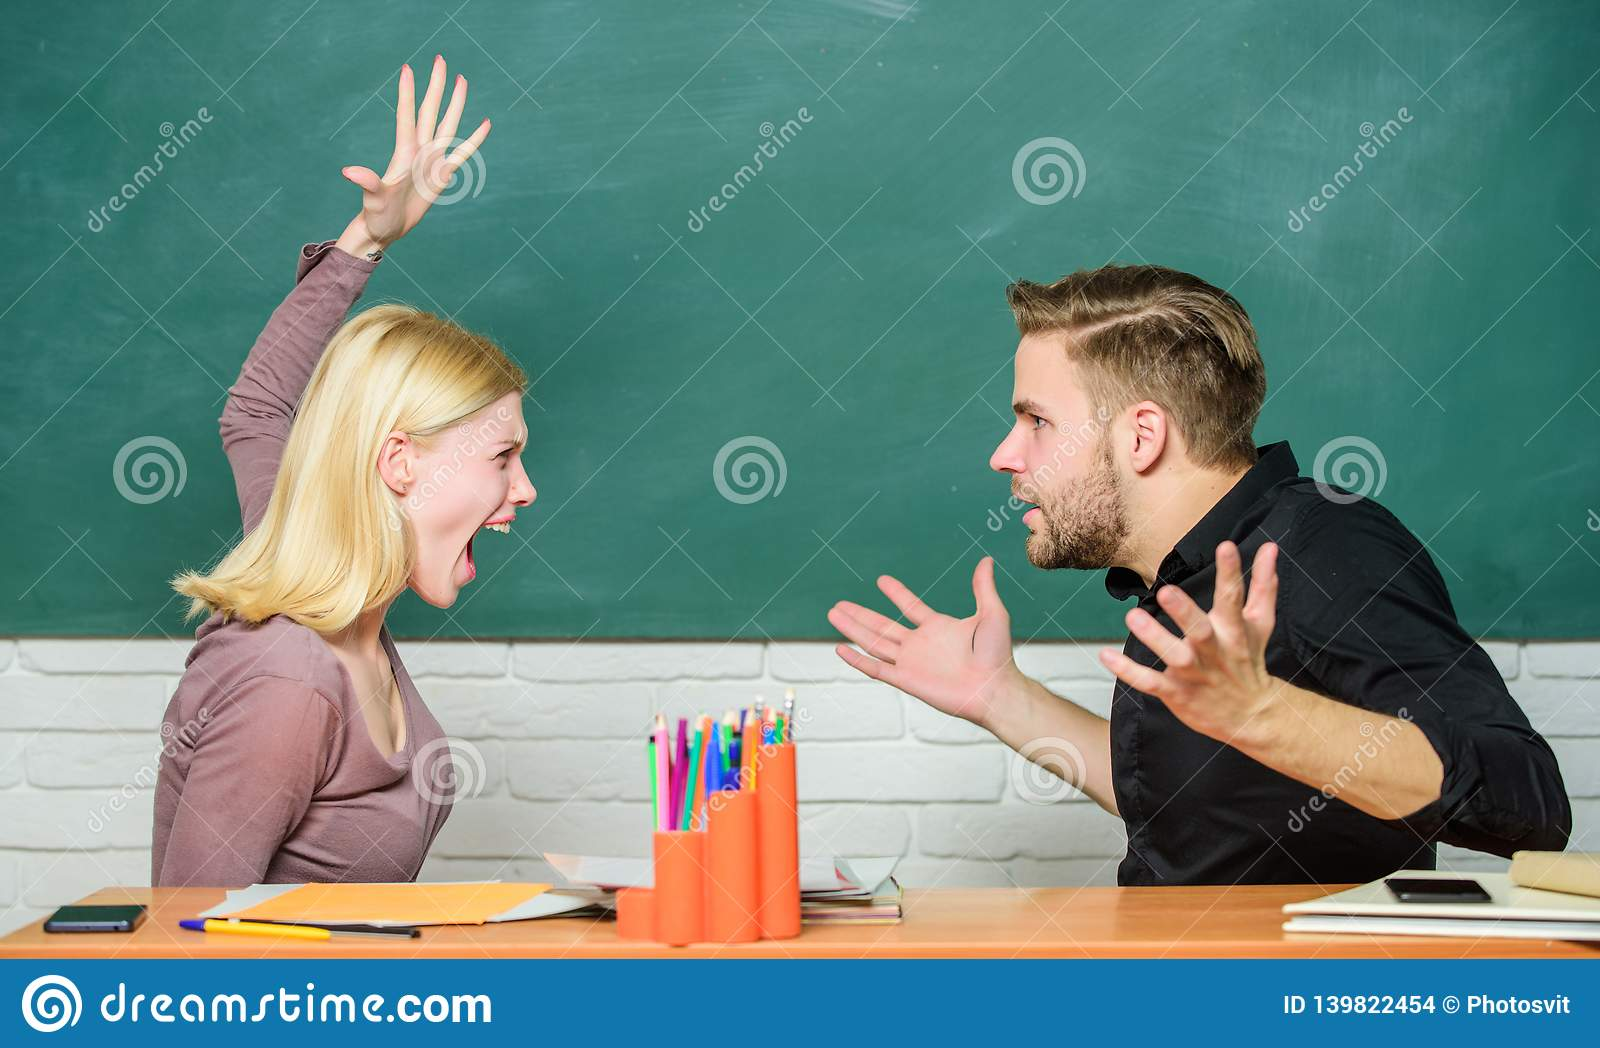 School Conflict Angry Woman Going To Man With Her Fists